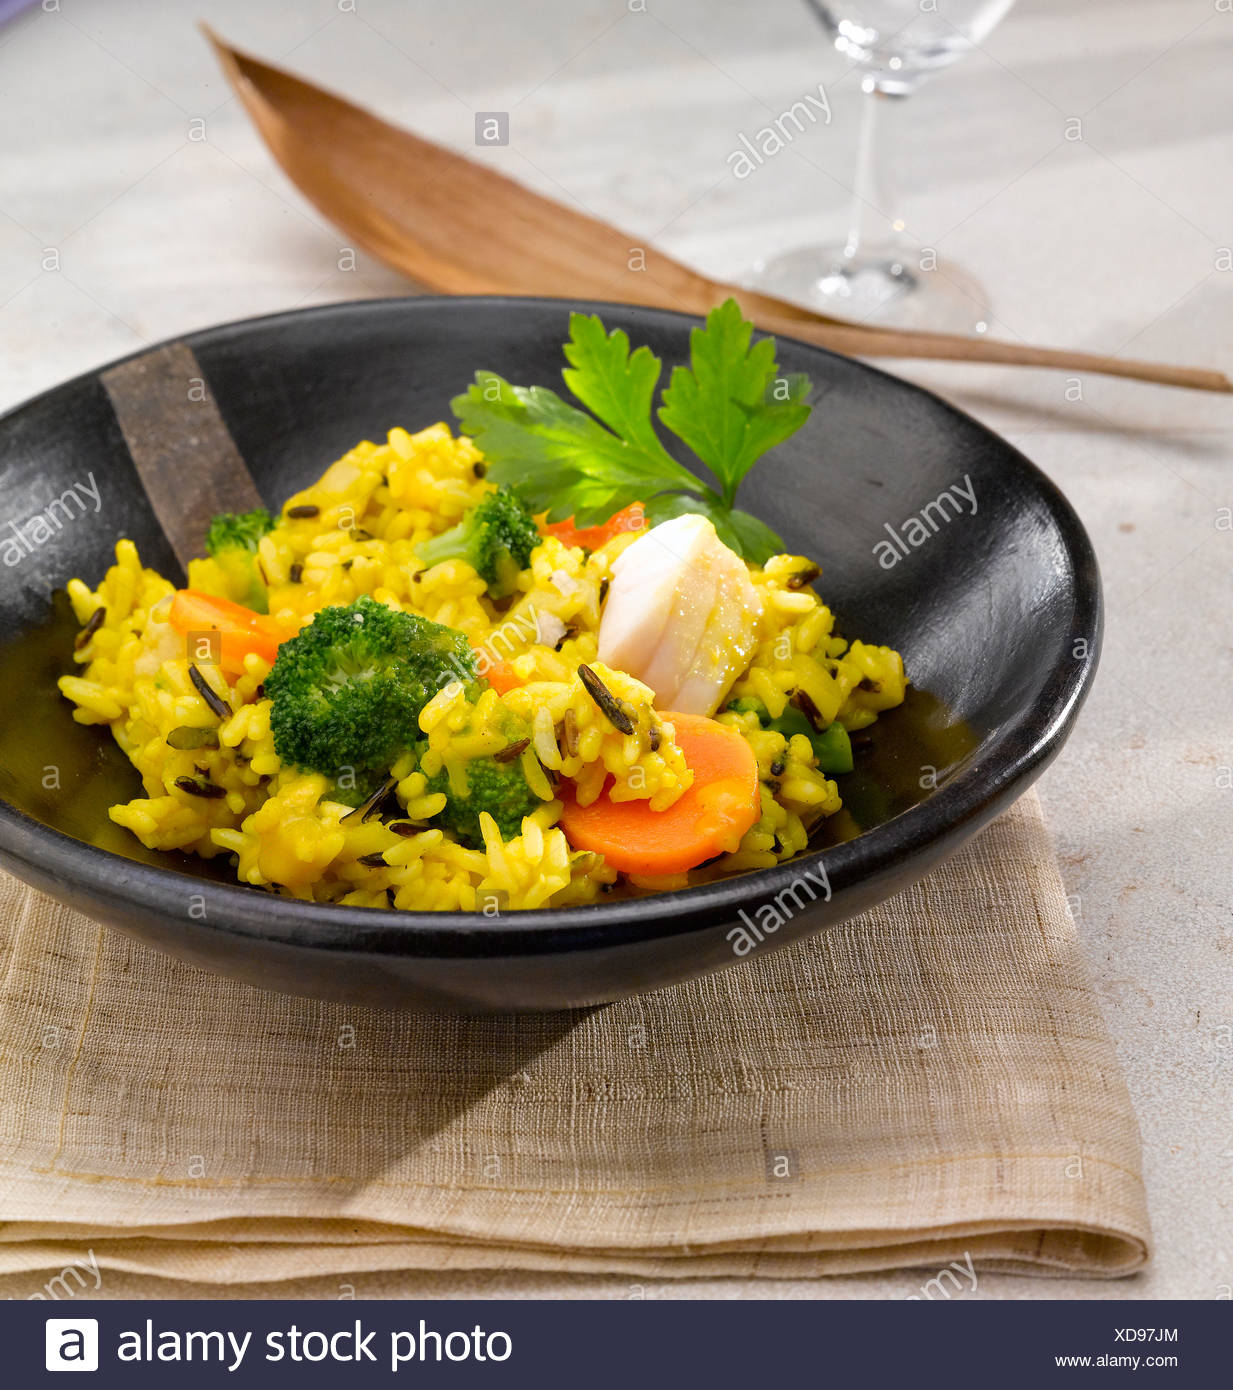 Curry dish in wooden bowl - Stock Image